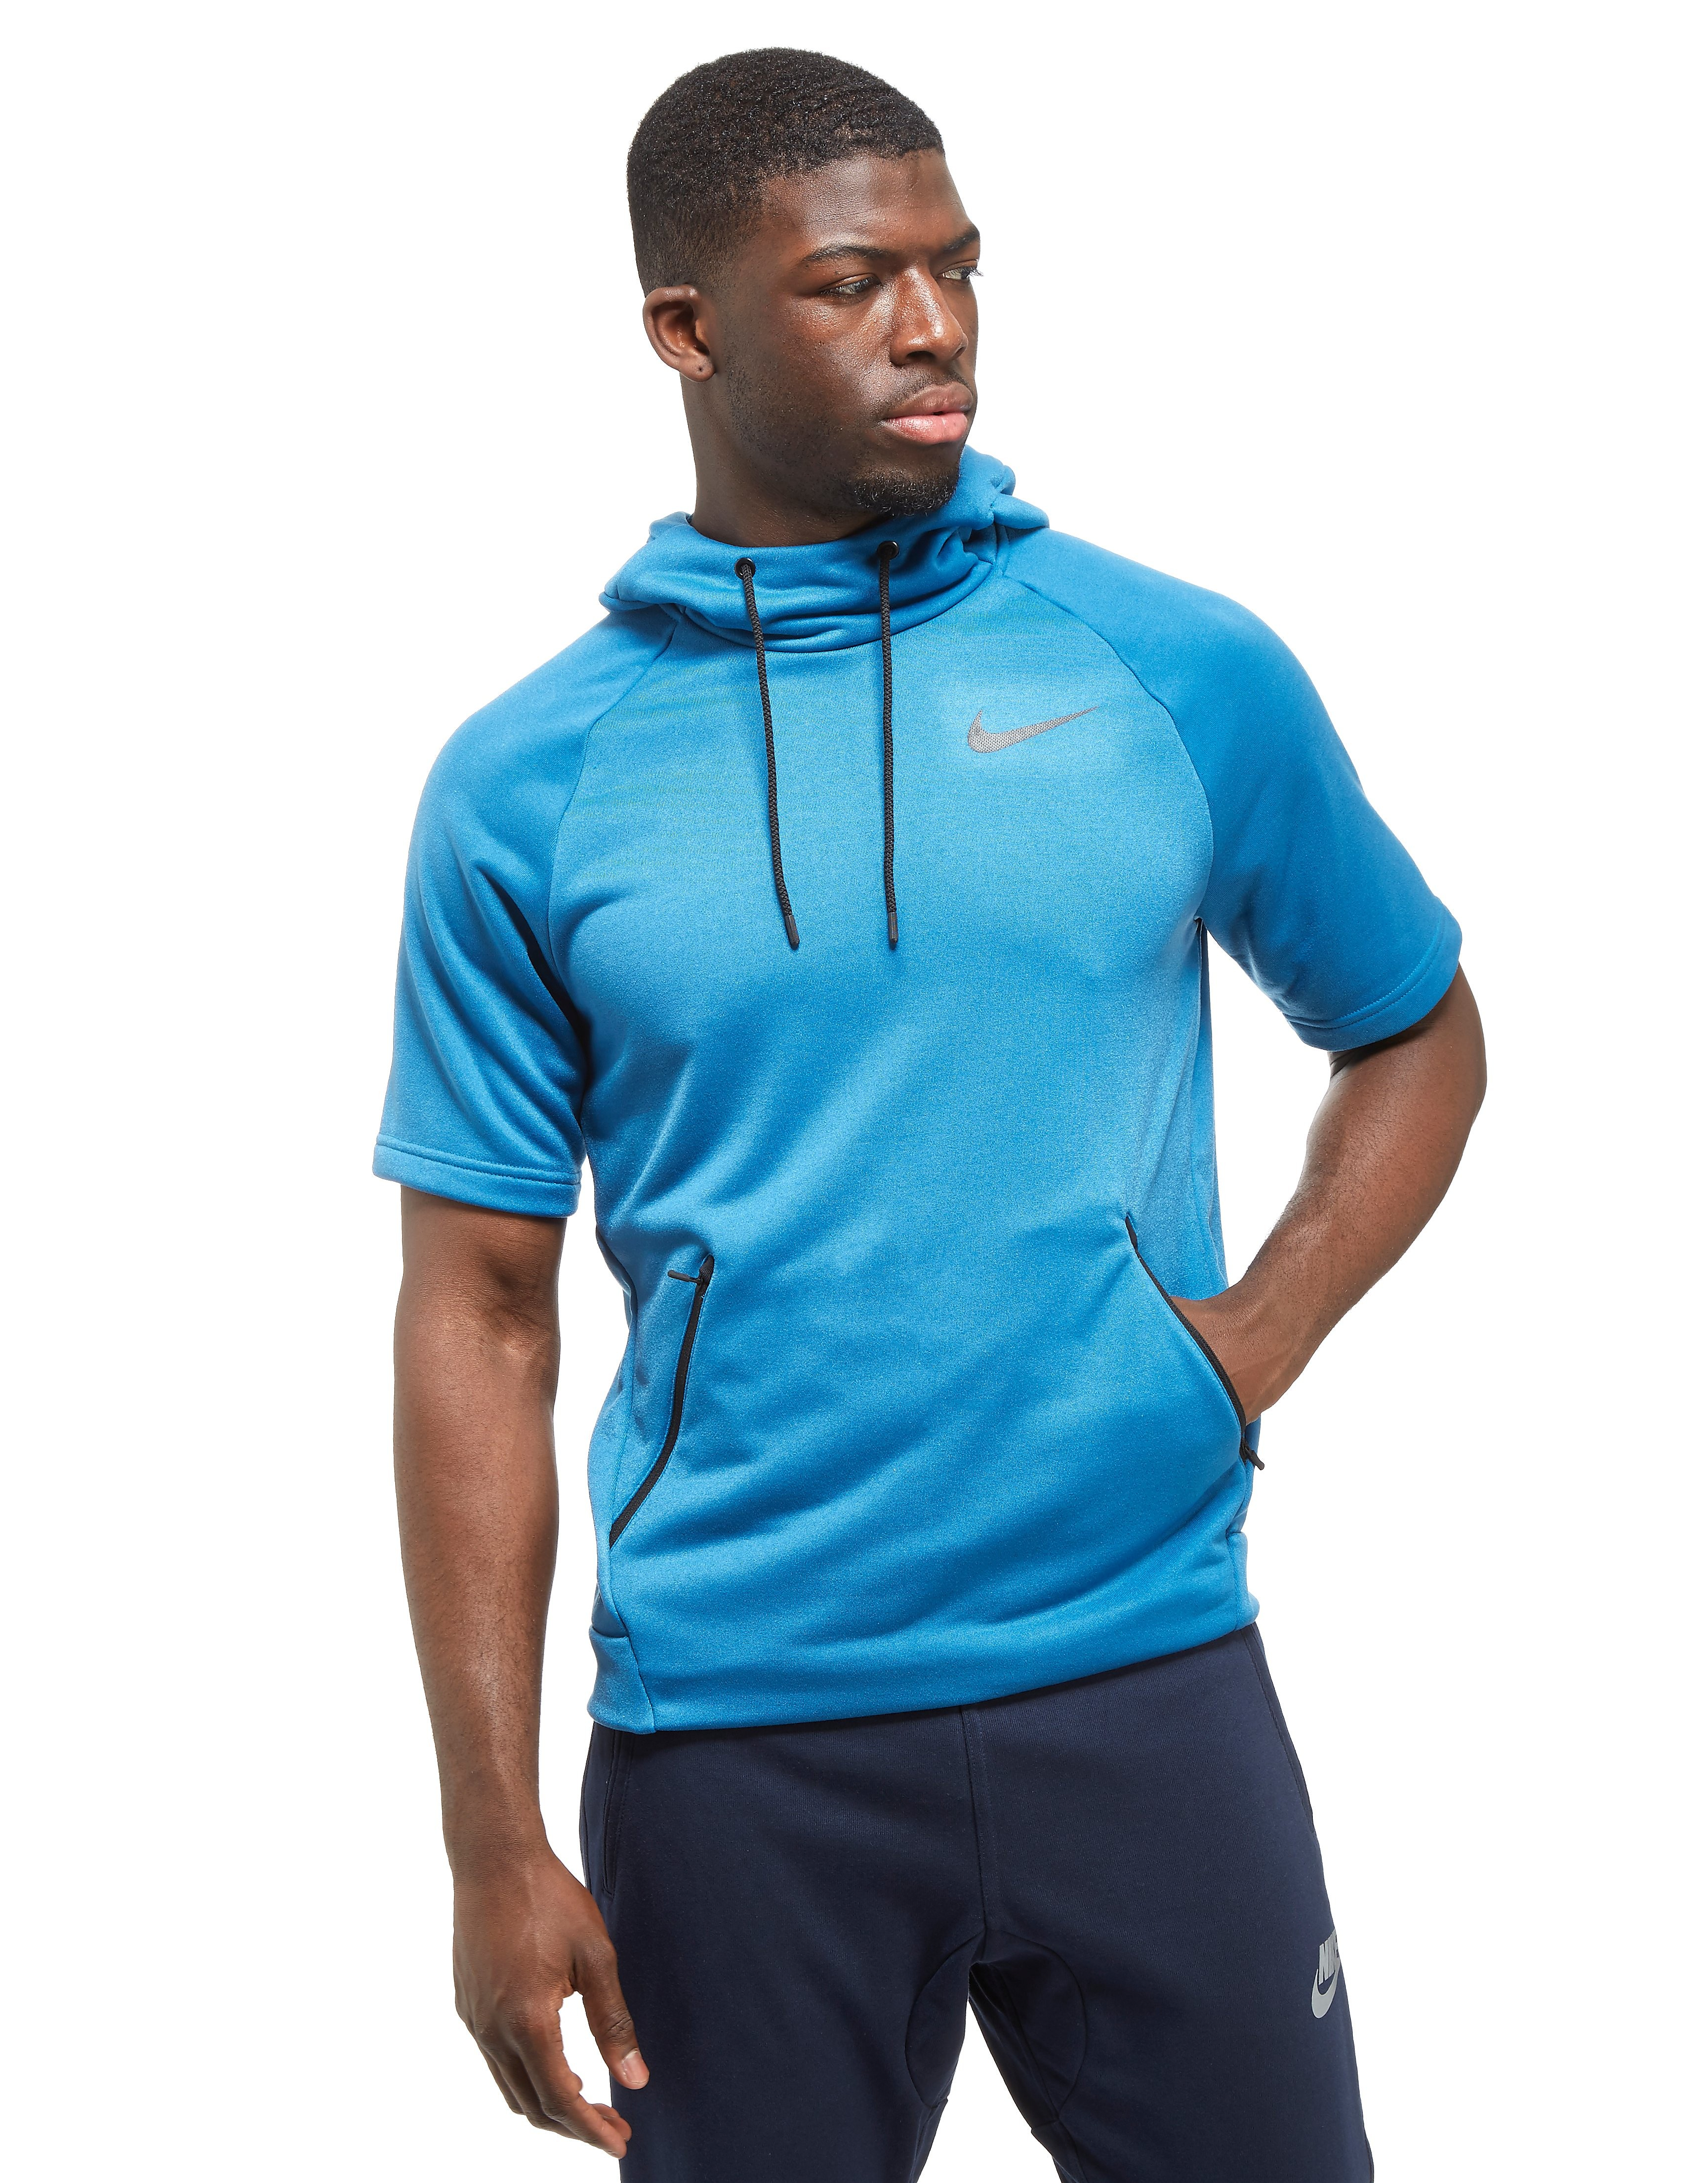 Nike Hoody à manches courtes